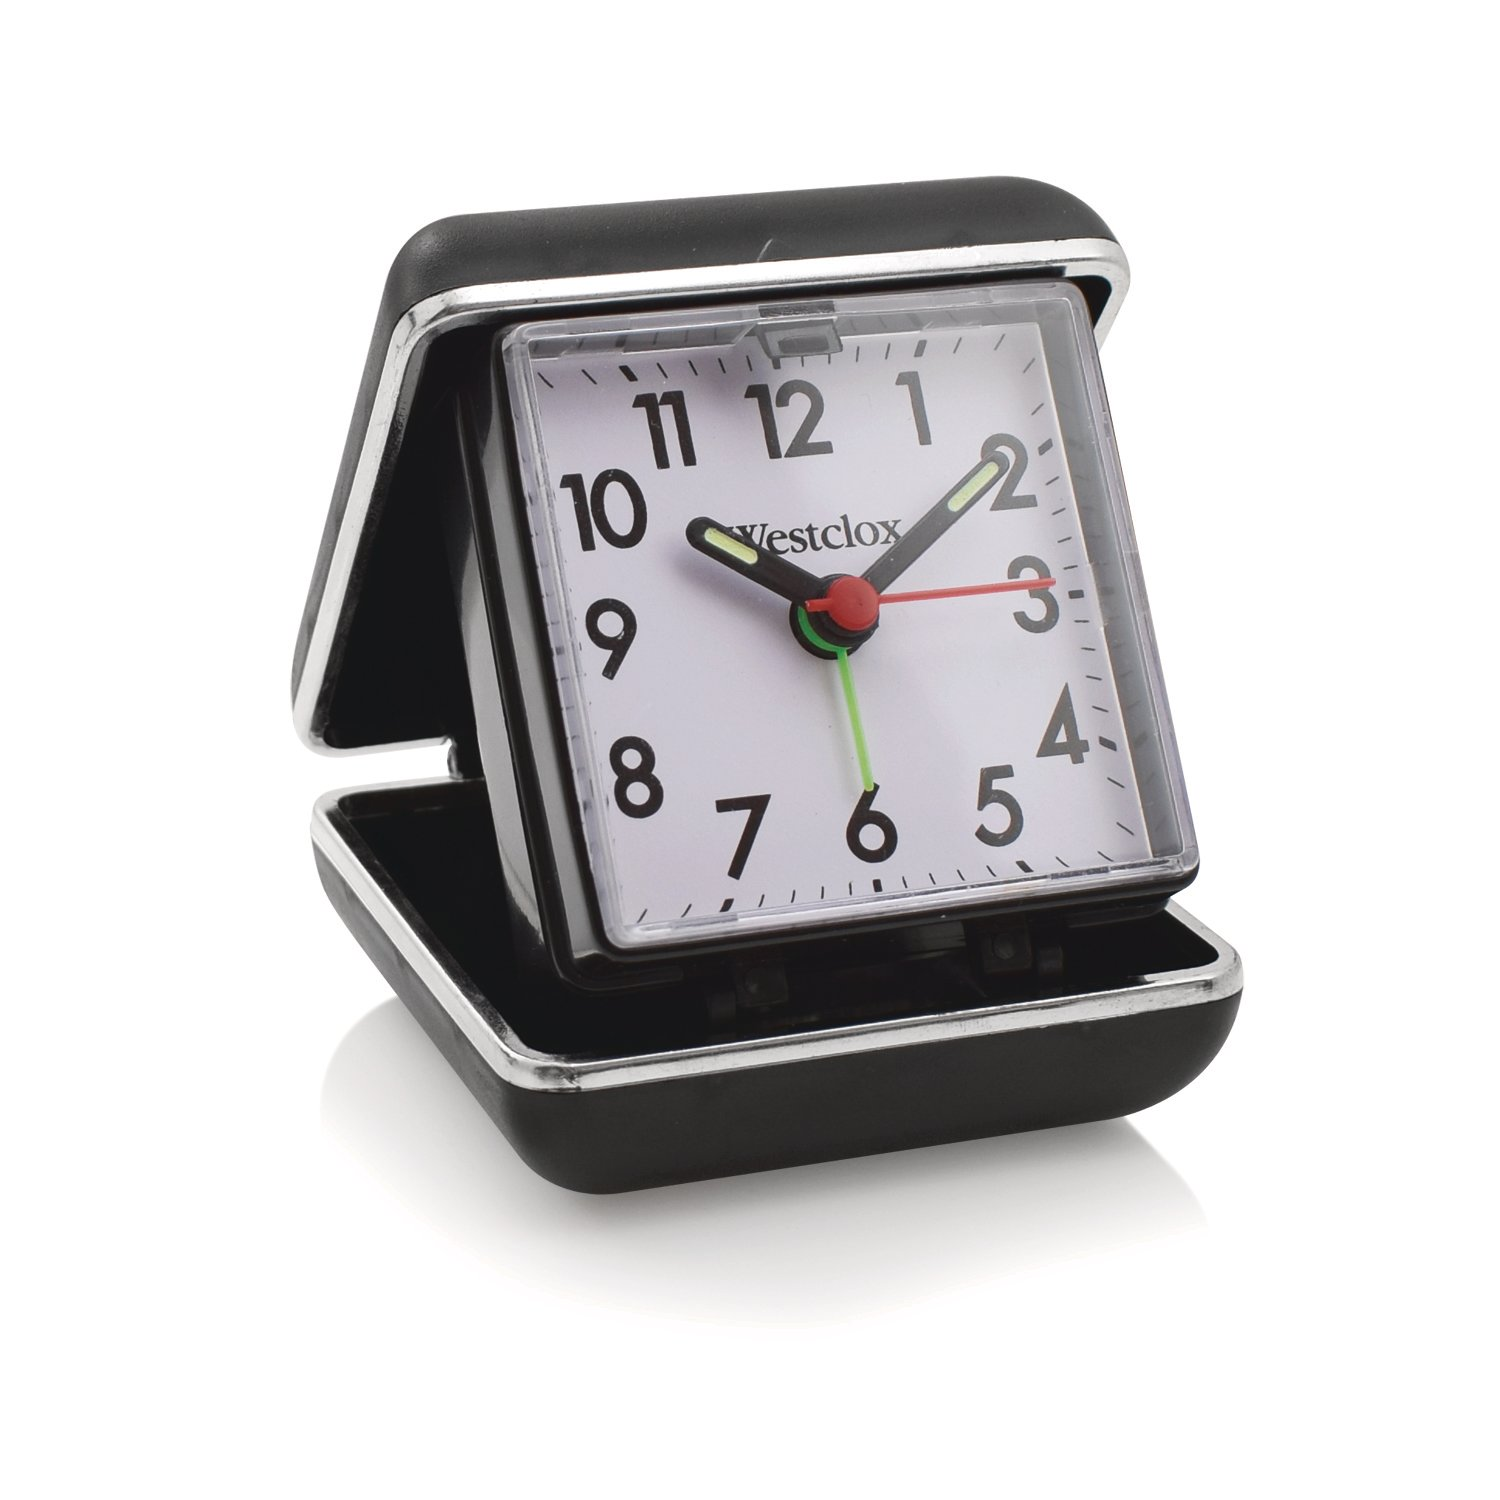 Westclox Folding Travel Analog Alarm Clock